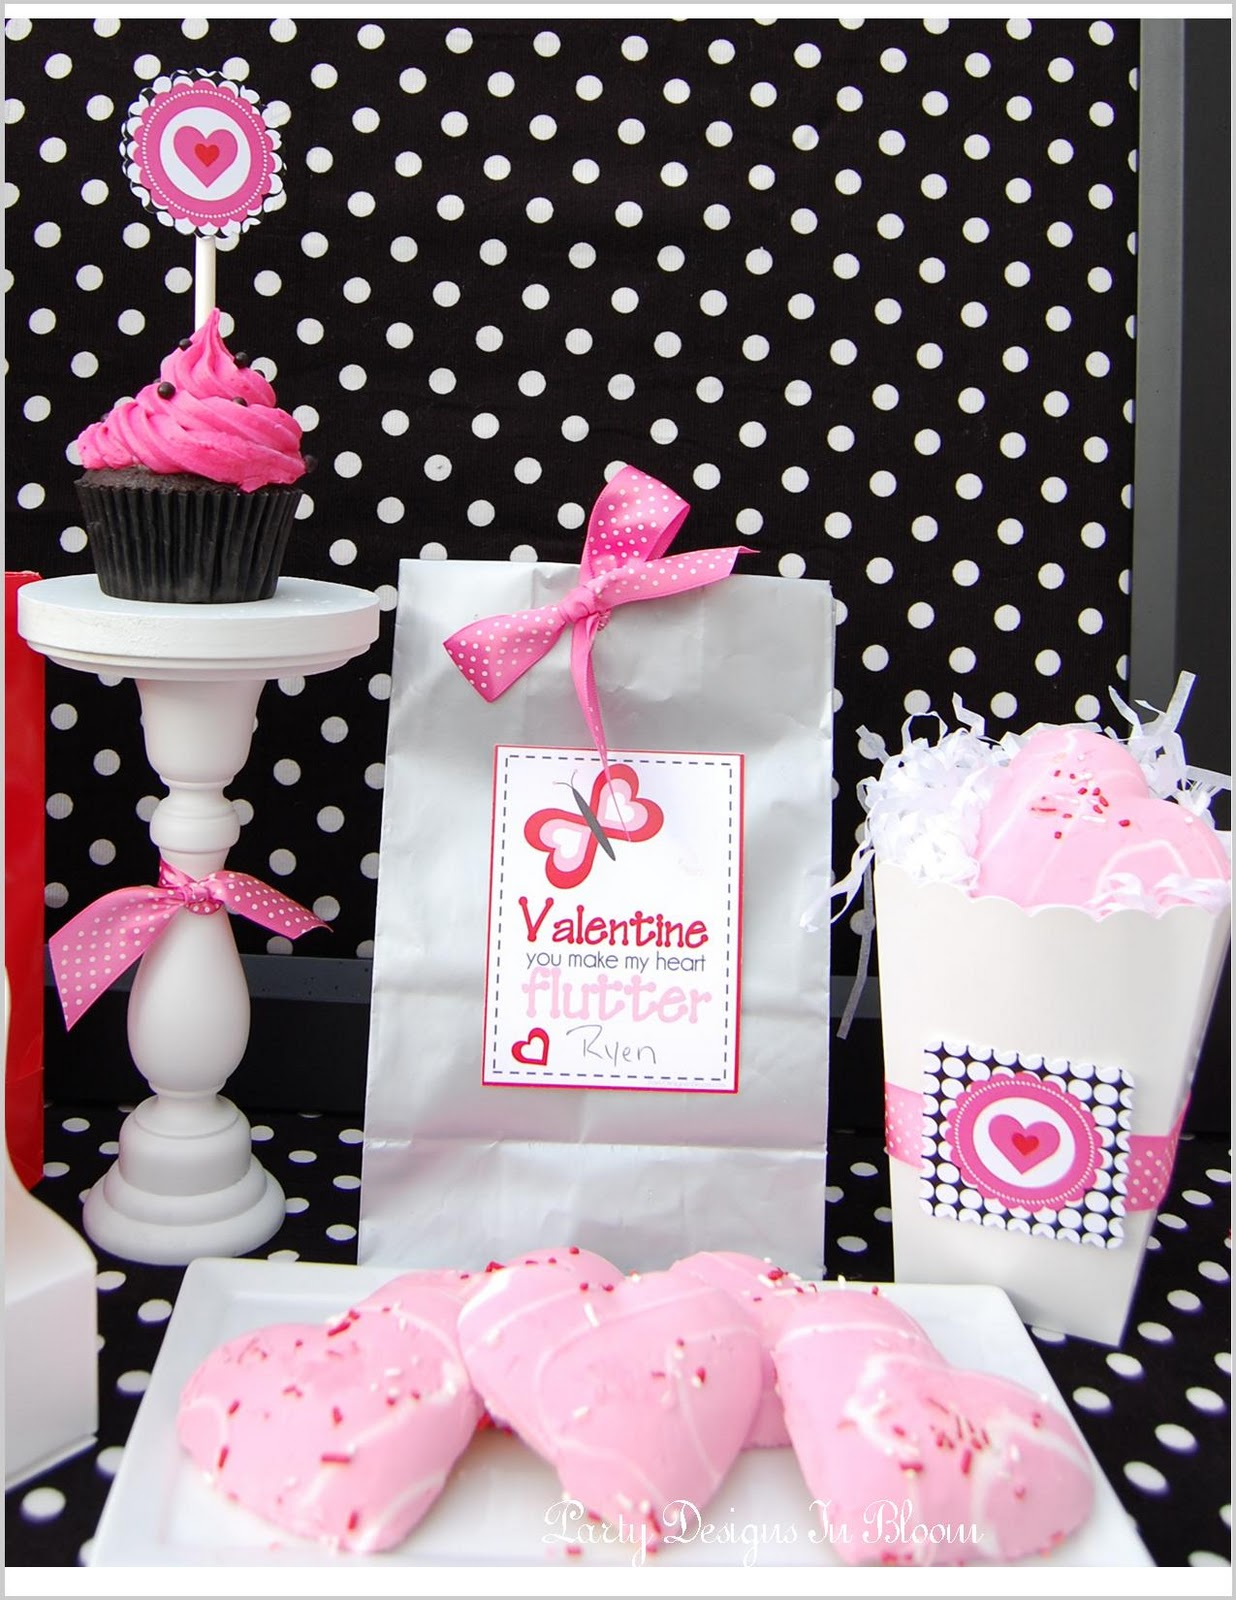 Party Designs In Bloom Sweet Ideas For Your Free Mini